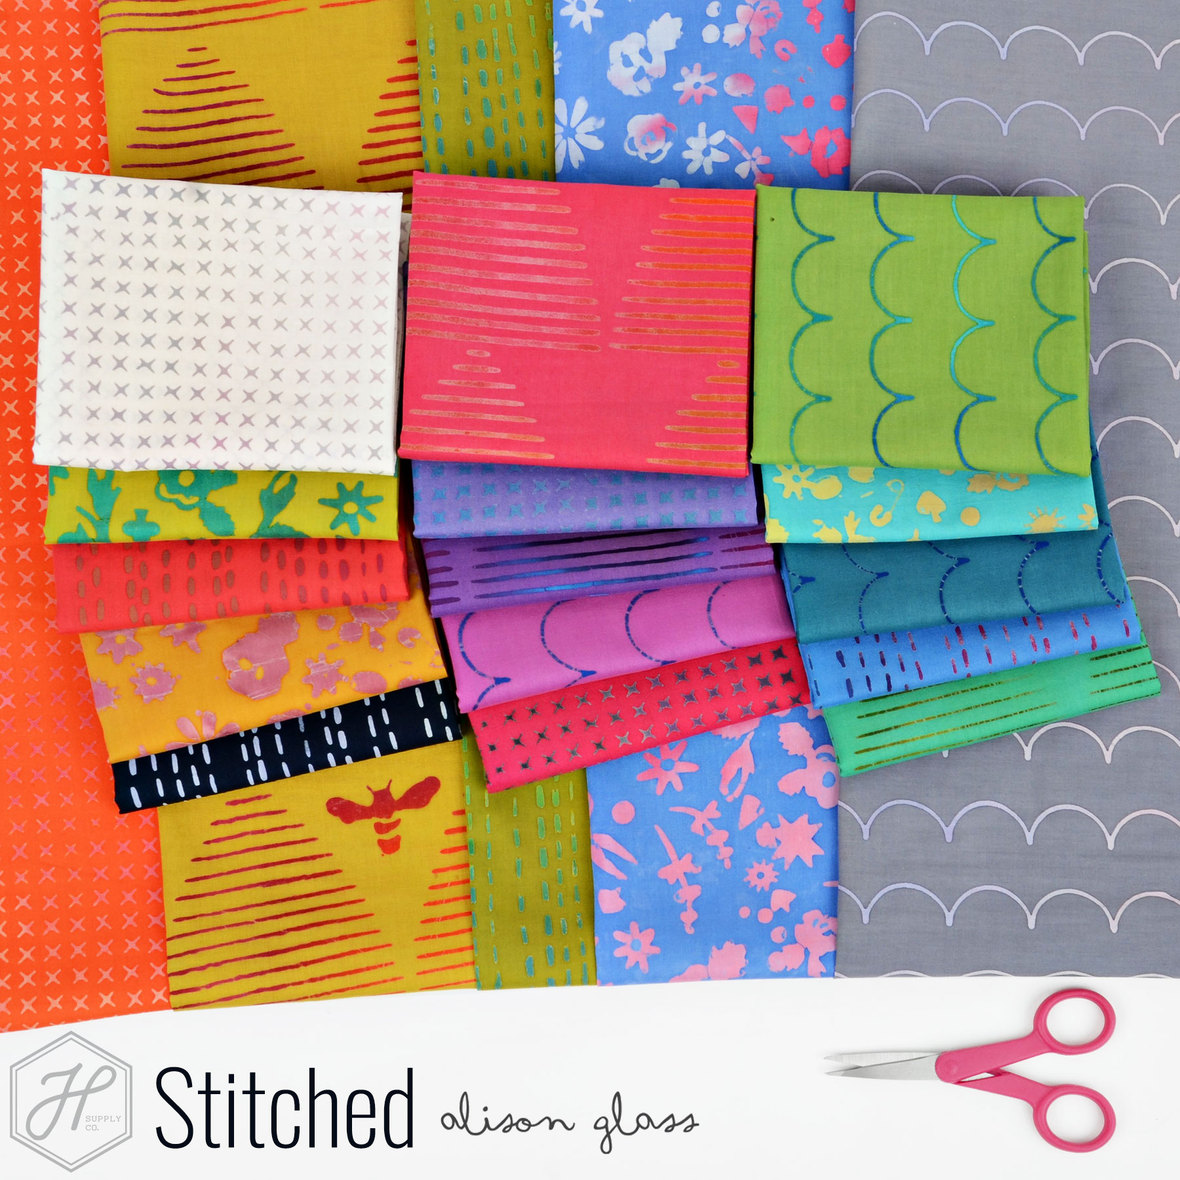 Stitched-Fabric-Alison-Glass-at-Hawthorne-Supply-Co